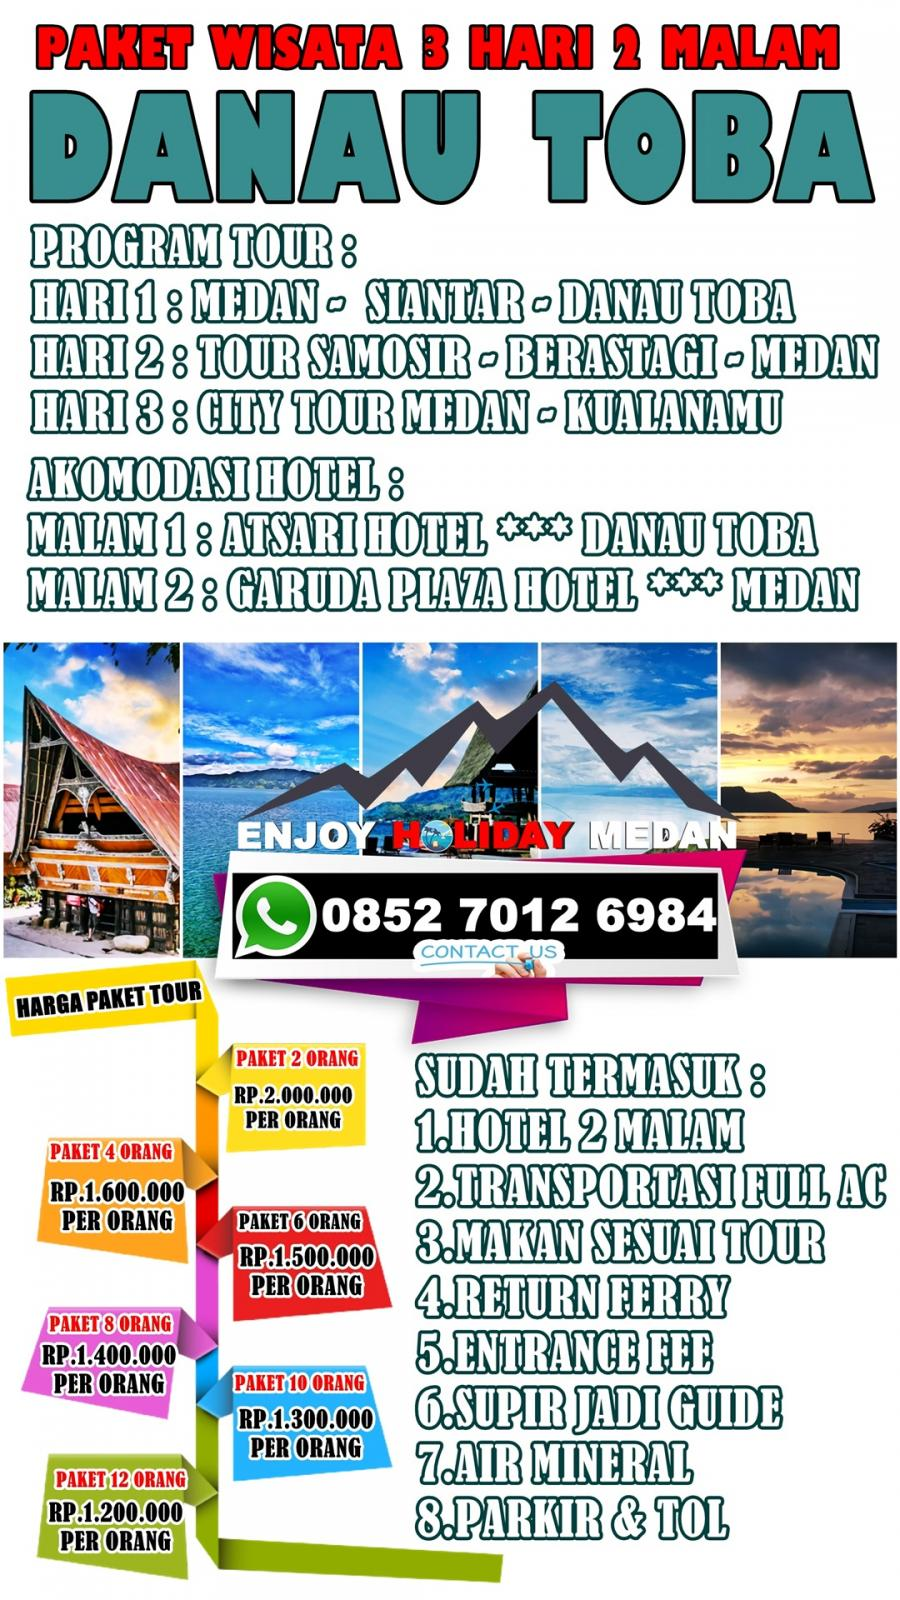 MEDAN GOLF PACKAGE 3 DAYS 2 NIGTHS